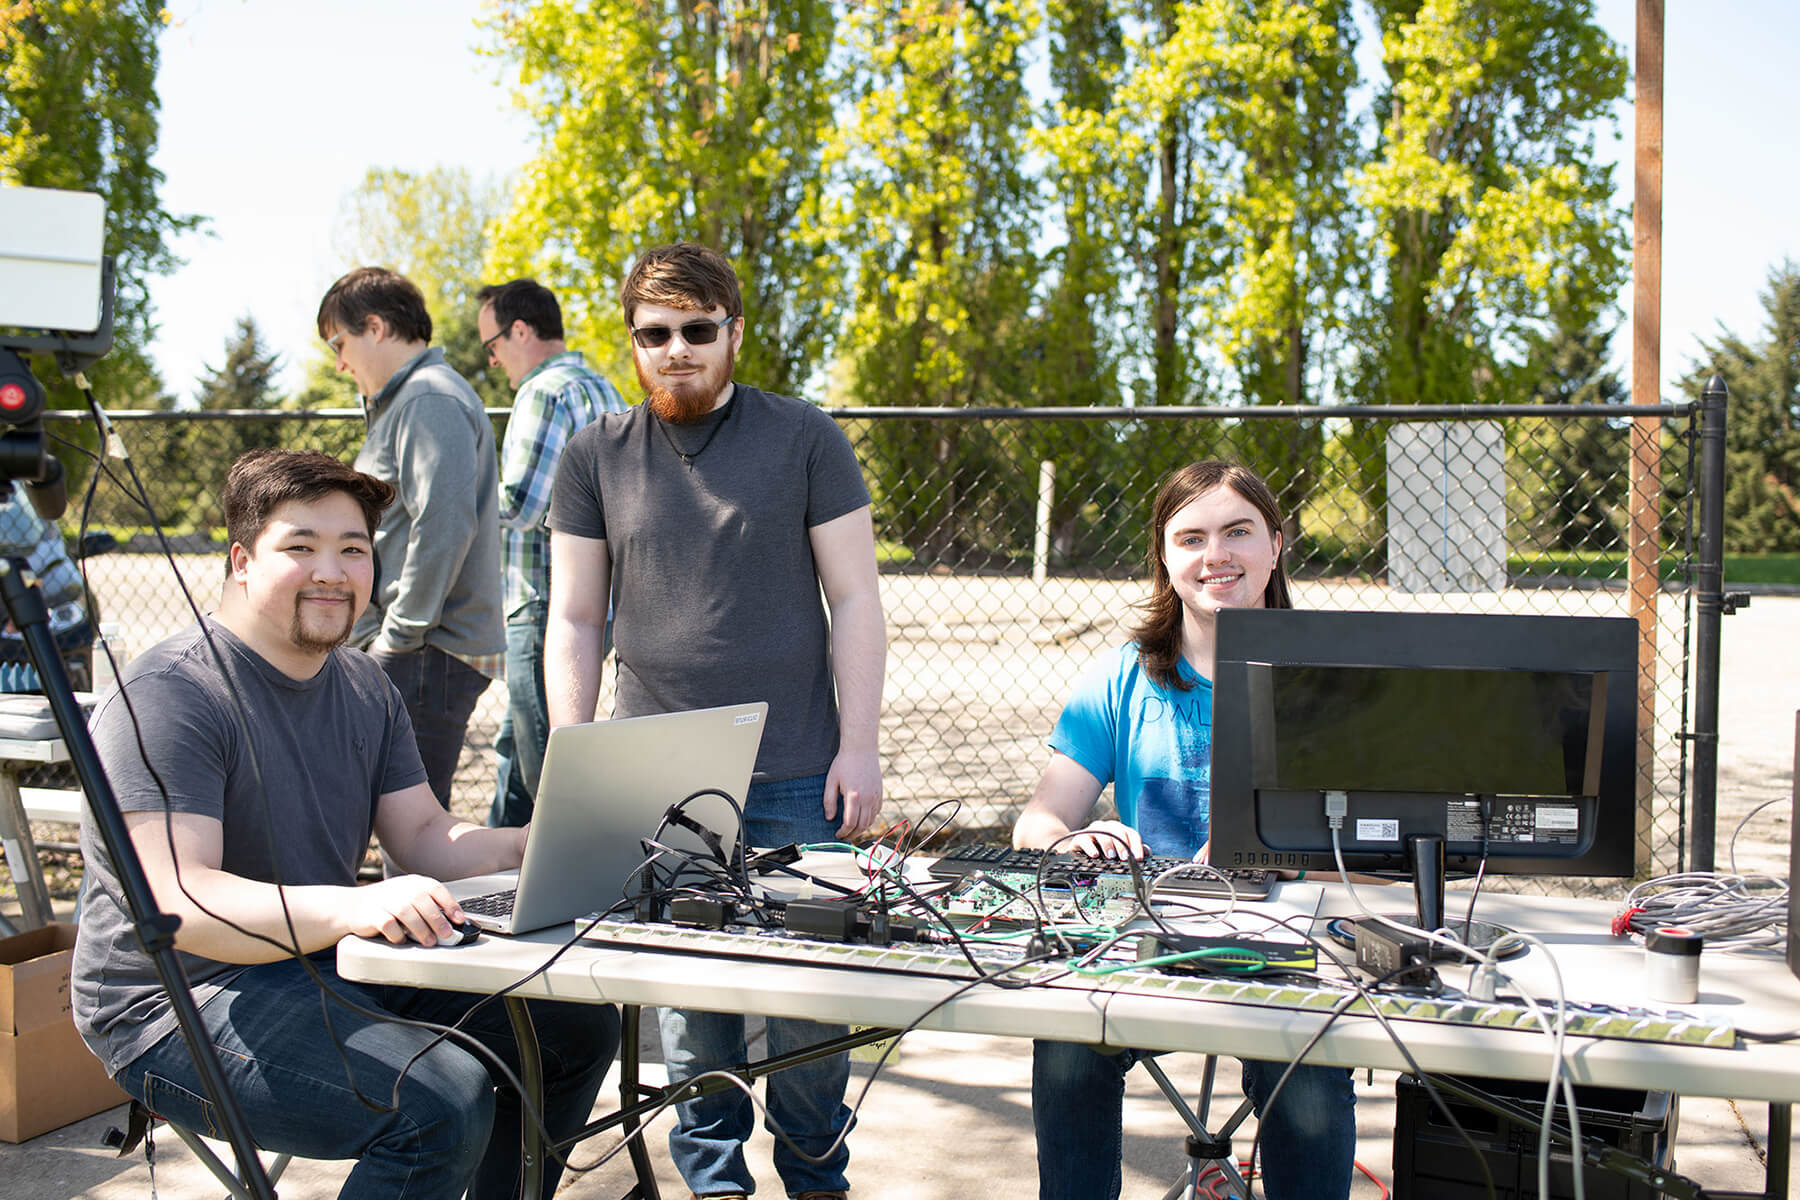 Three students pose in a park behind a computer setup that includes a laptop, monitor, radar system, and wires.